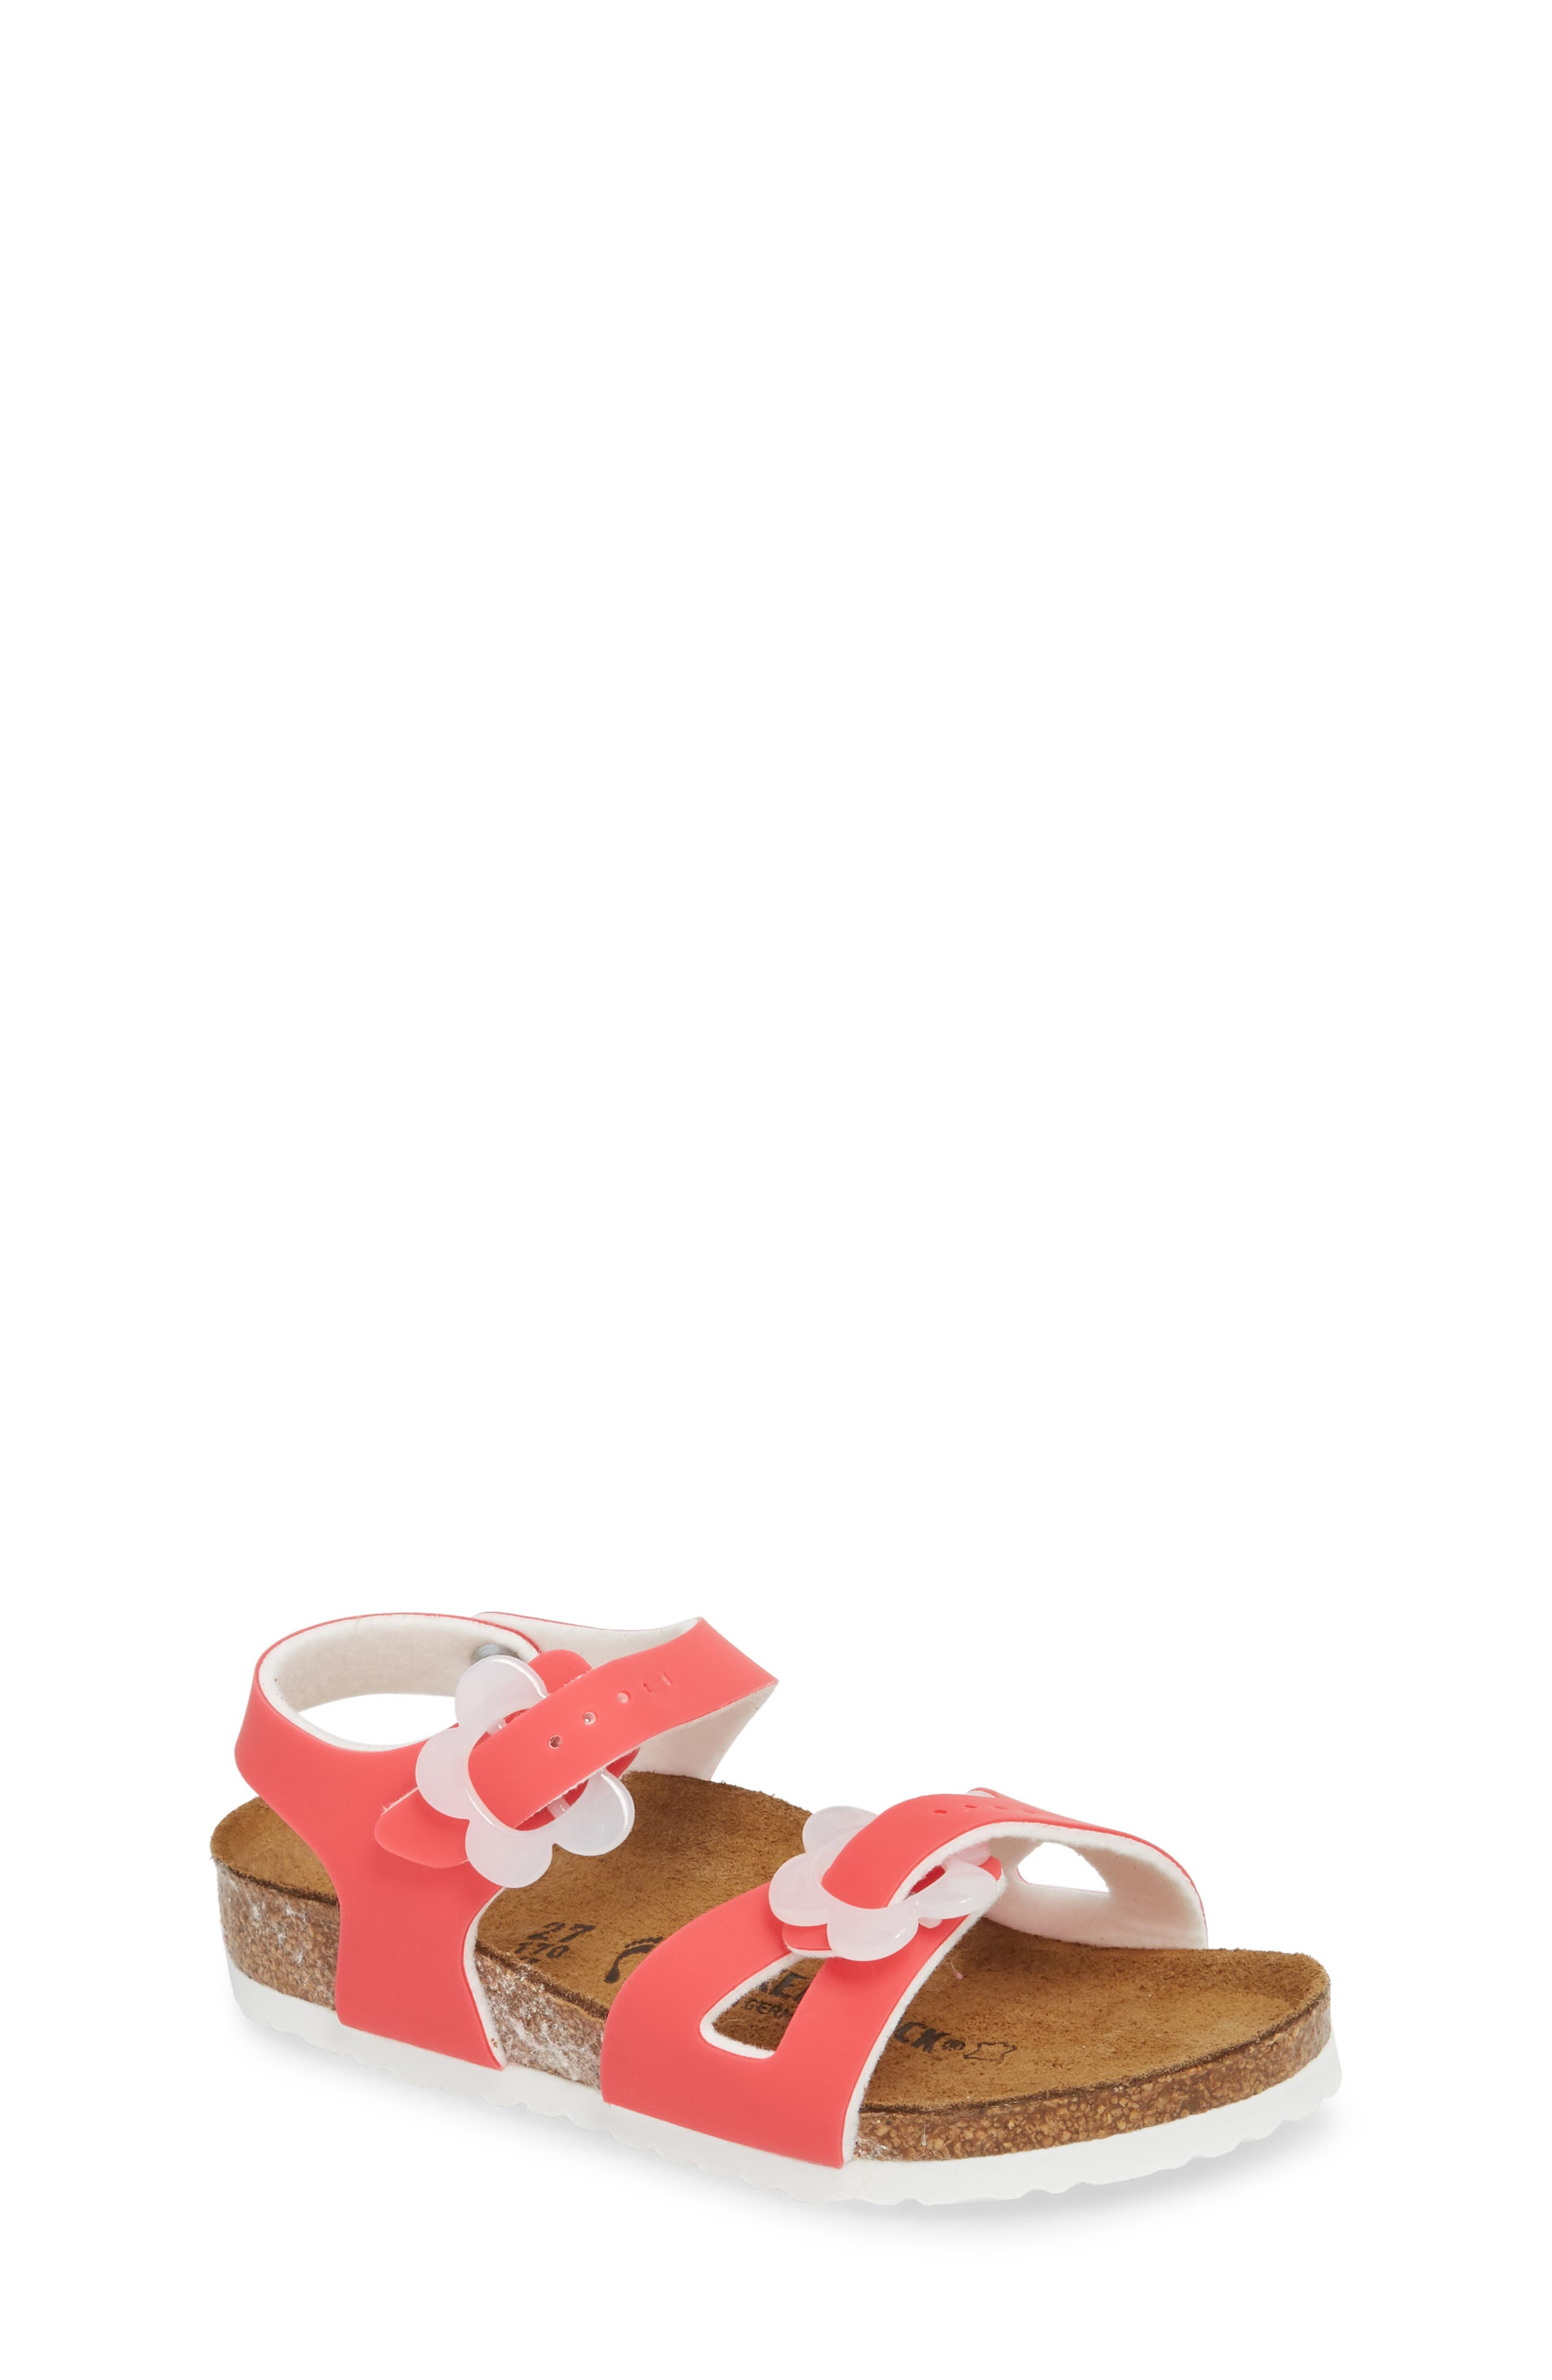 Rio Flowered Sandal,                         Main,                         color, Candy Pink